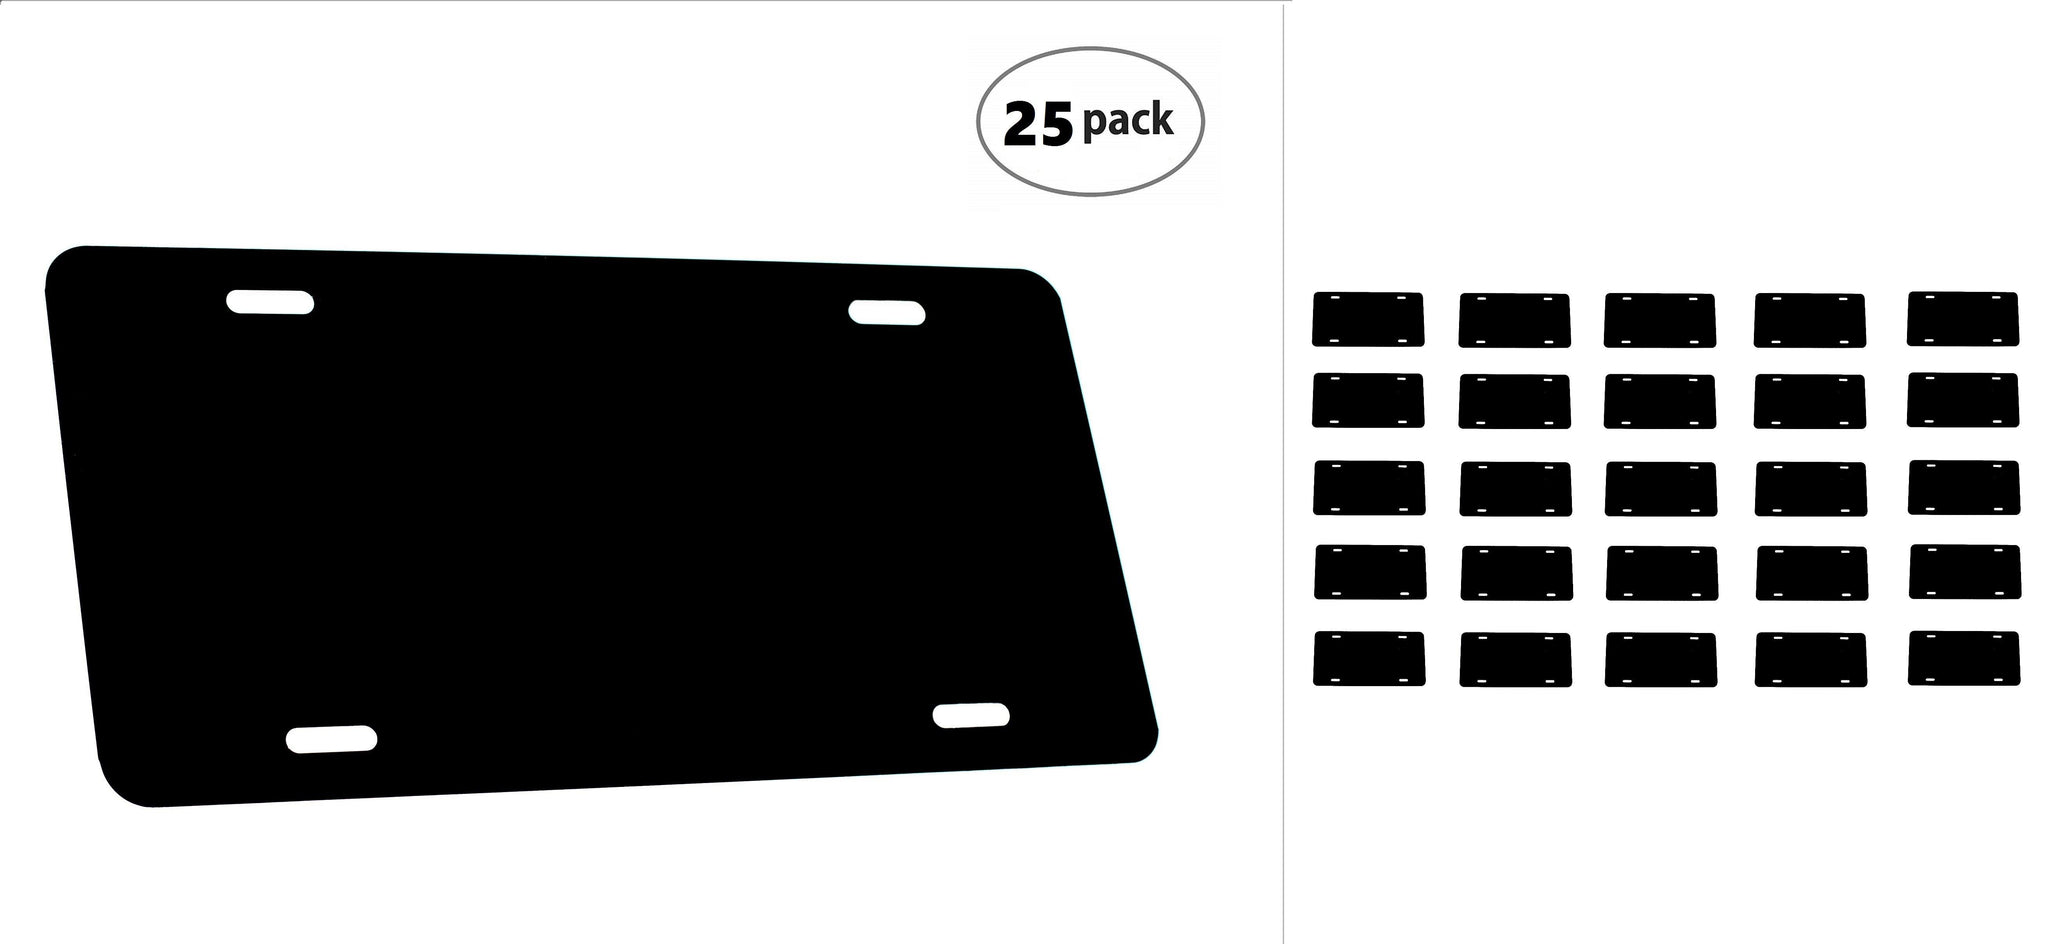 Black, 5 Pack DMSE Wholesale Blank Metal Aluminium Automotive License Plate Plates Tag for Custom Design Work 0.025 Thickness//0.5mm US//Canada Size 12x6 Made in USA